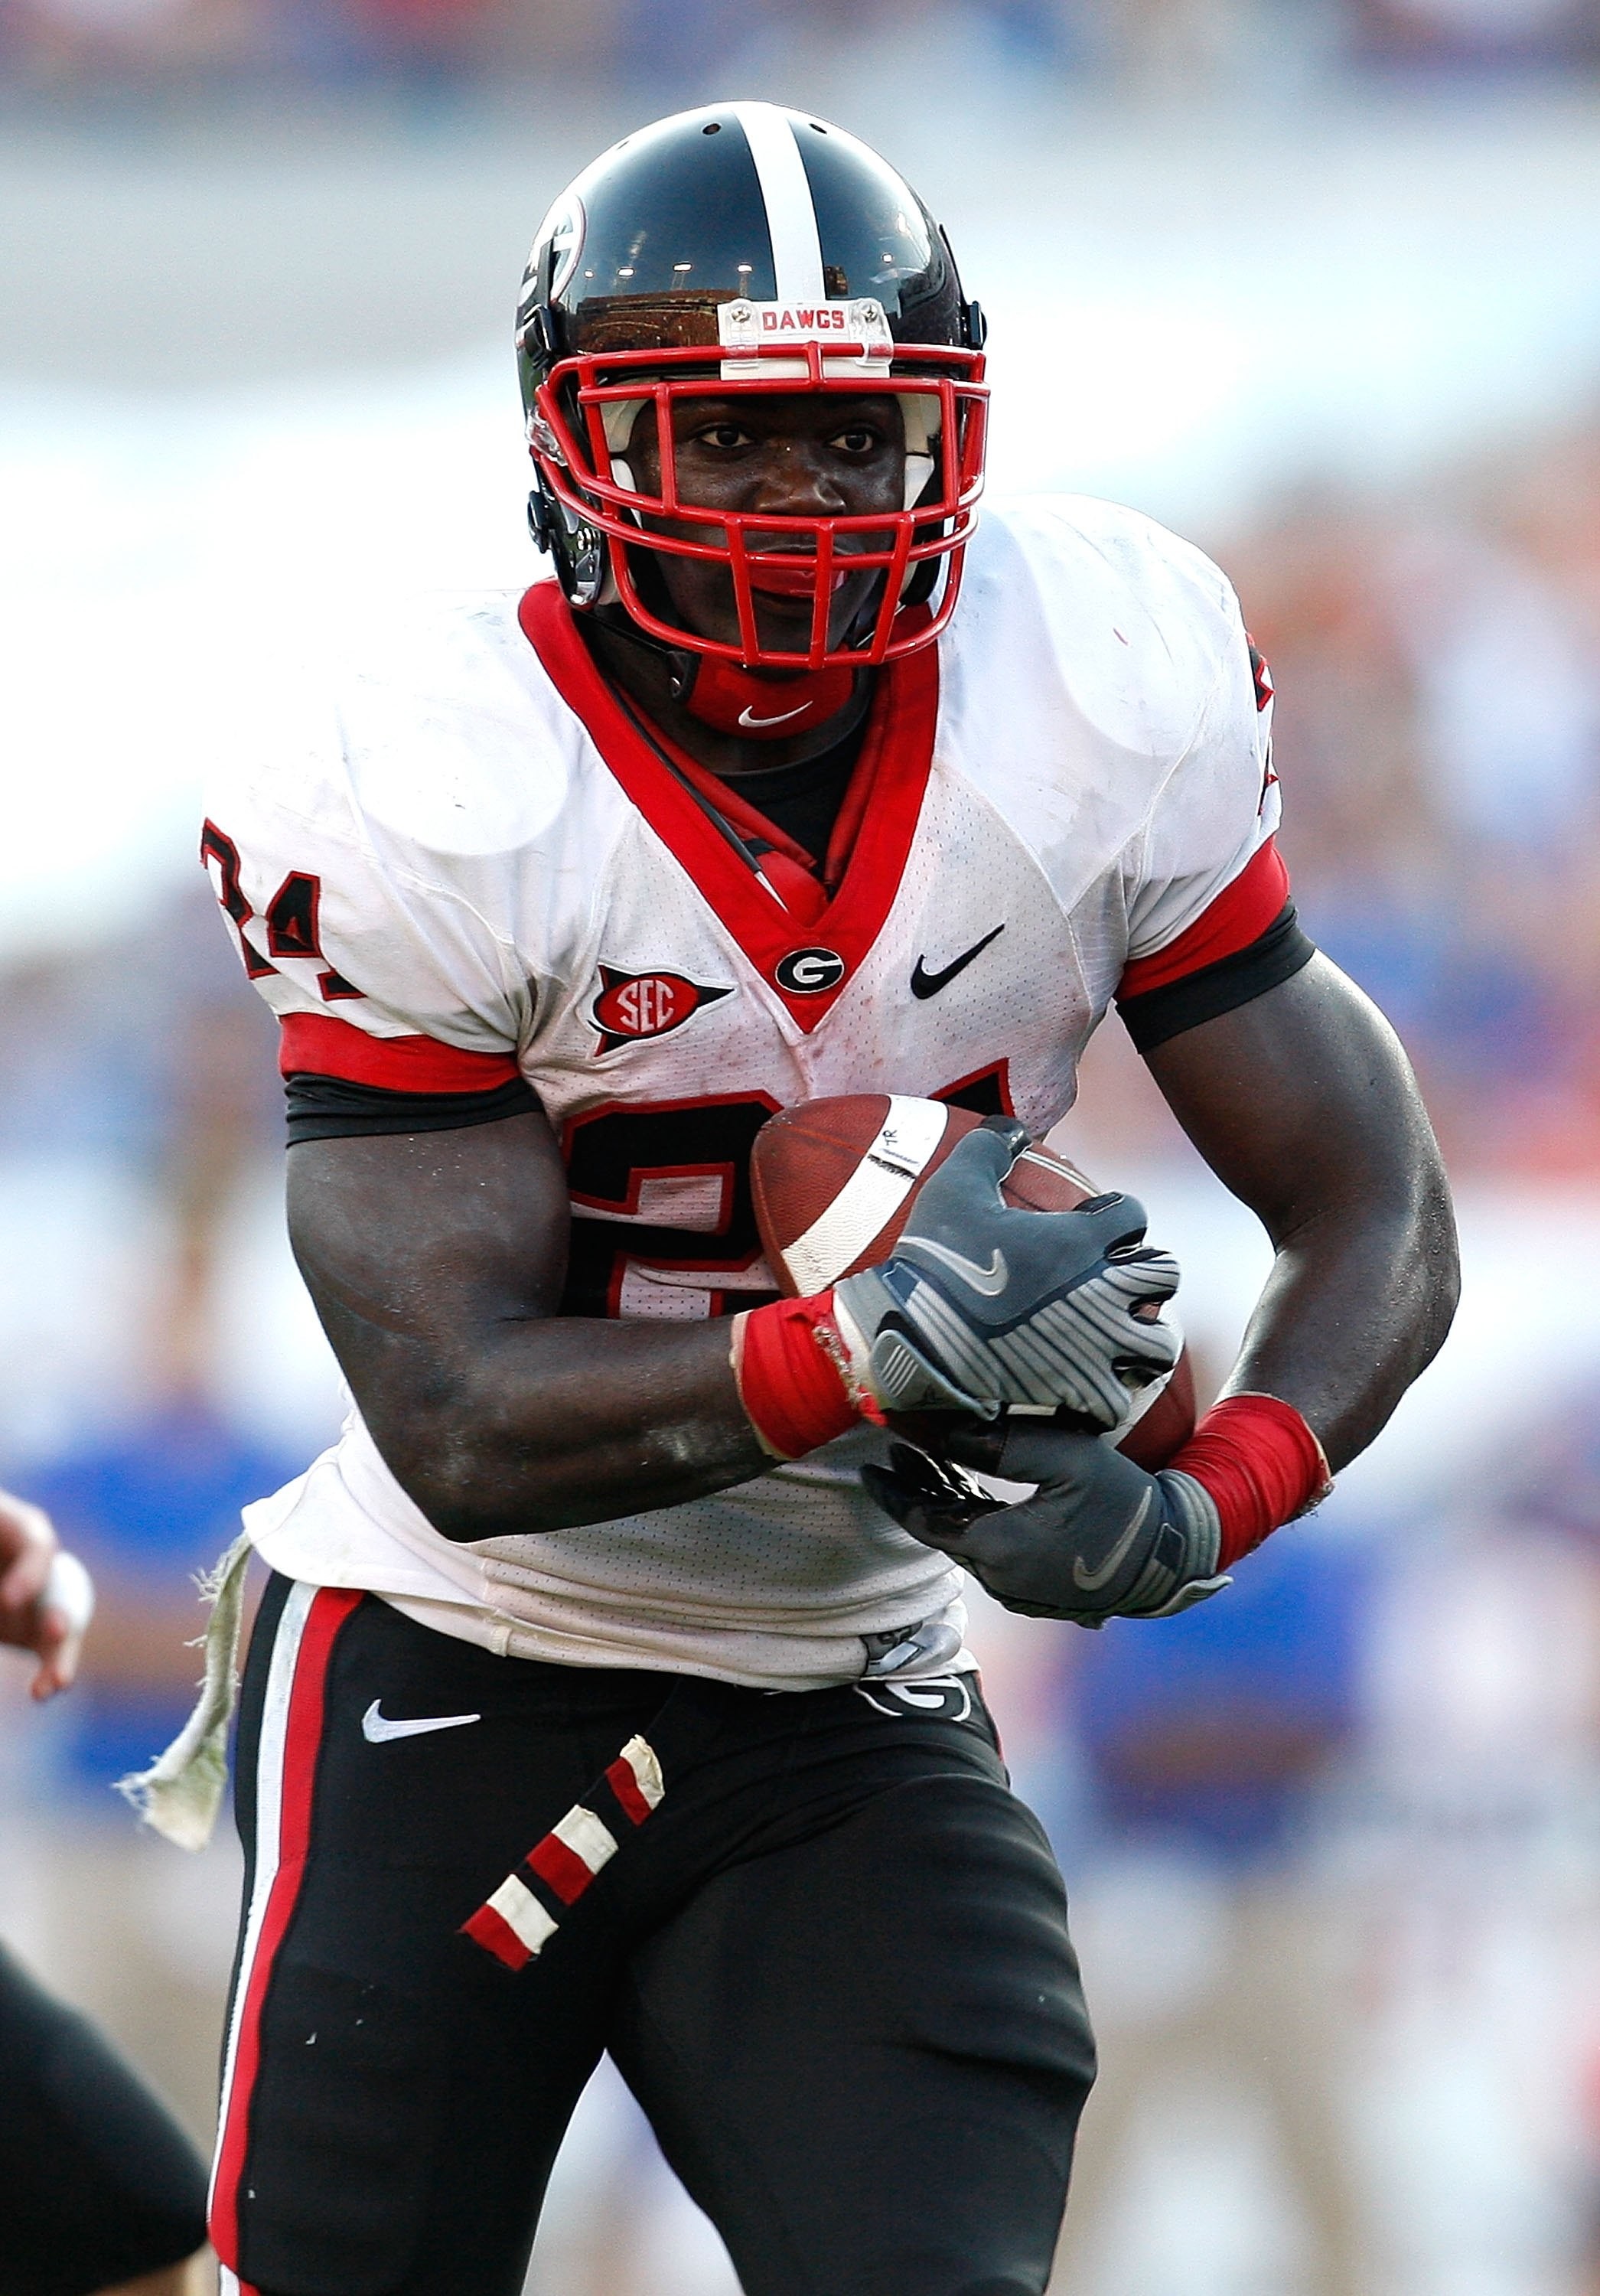 JACKSONVILLE, FL - OCTOBER 31:  Washaun Ealey #24 of the Georgia Bulldogs against the Florida Gators at Jacksonville Municipal Stadium on October 31, 2009 in Jacksonville, Florida.  (Photo by Kevin C. Cox/Getty Images)